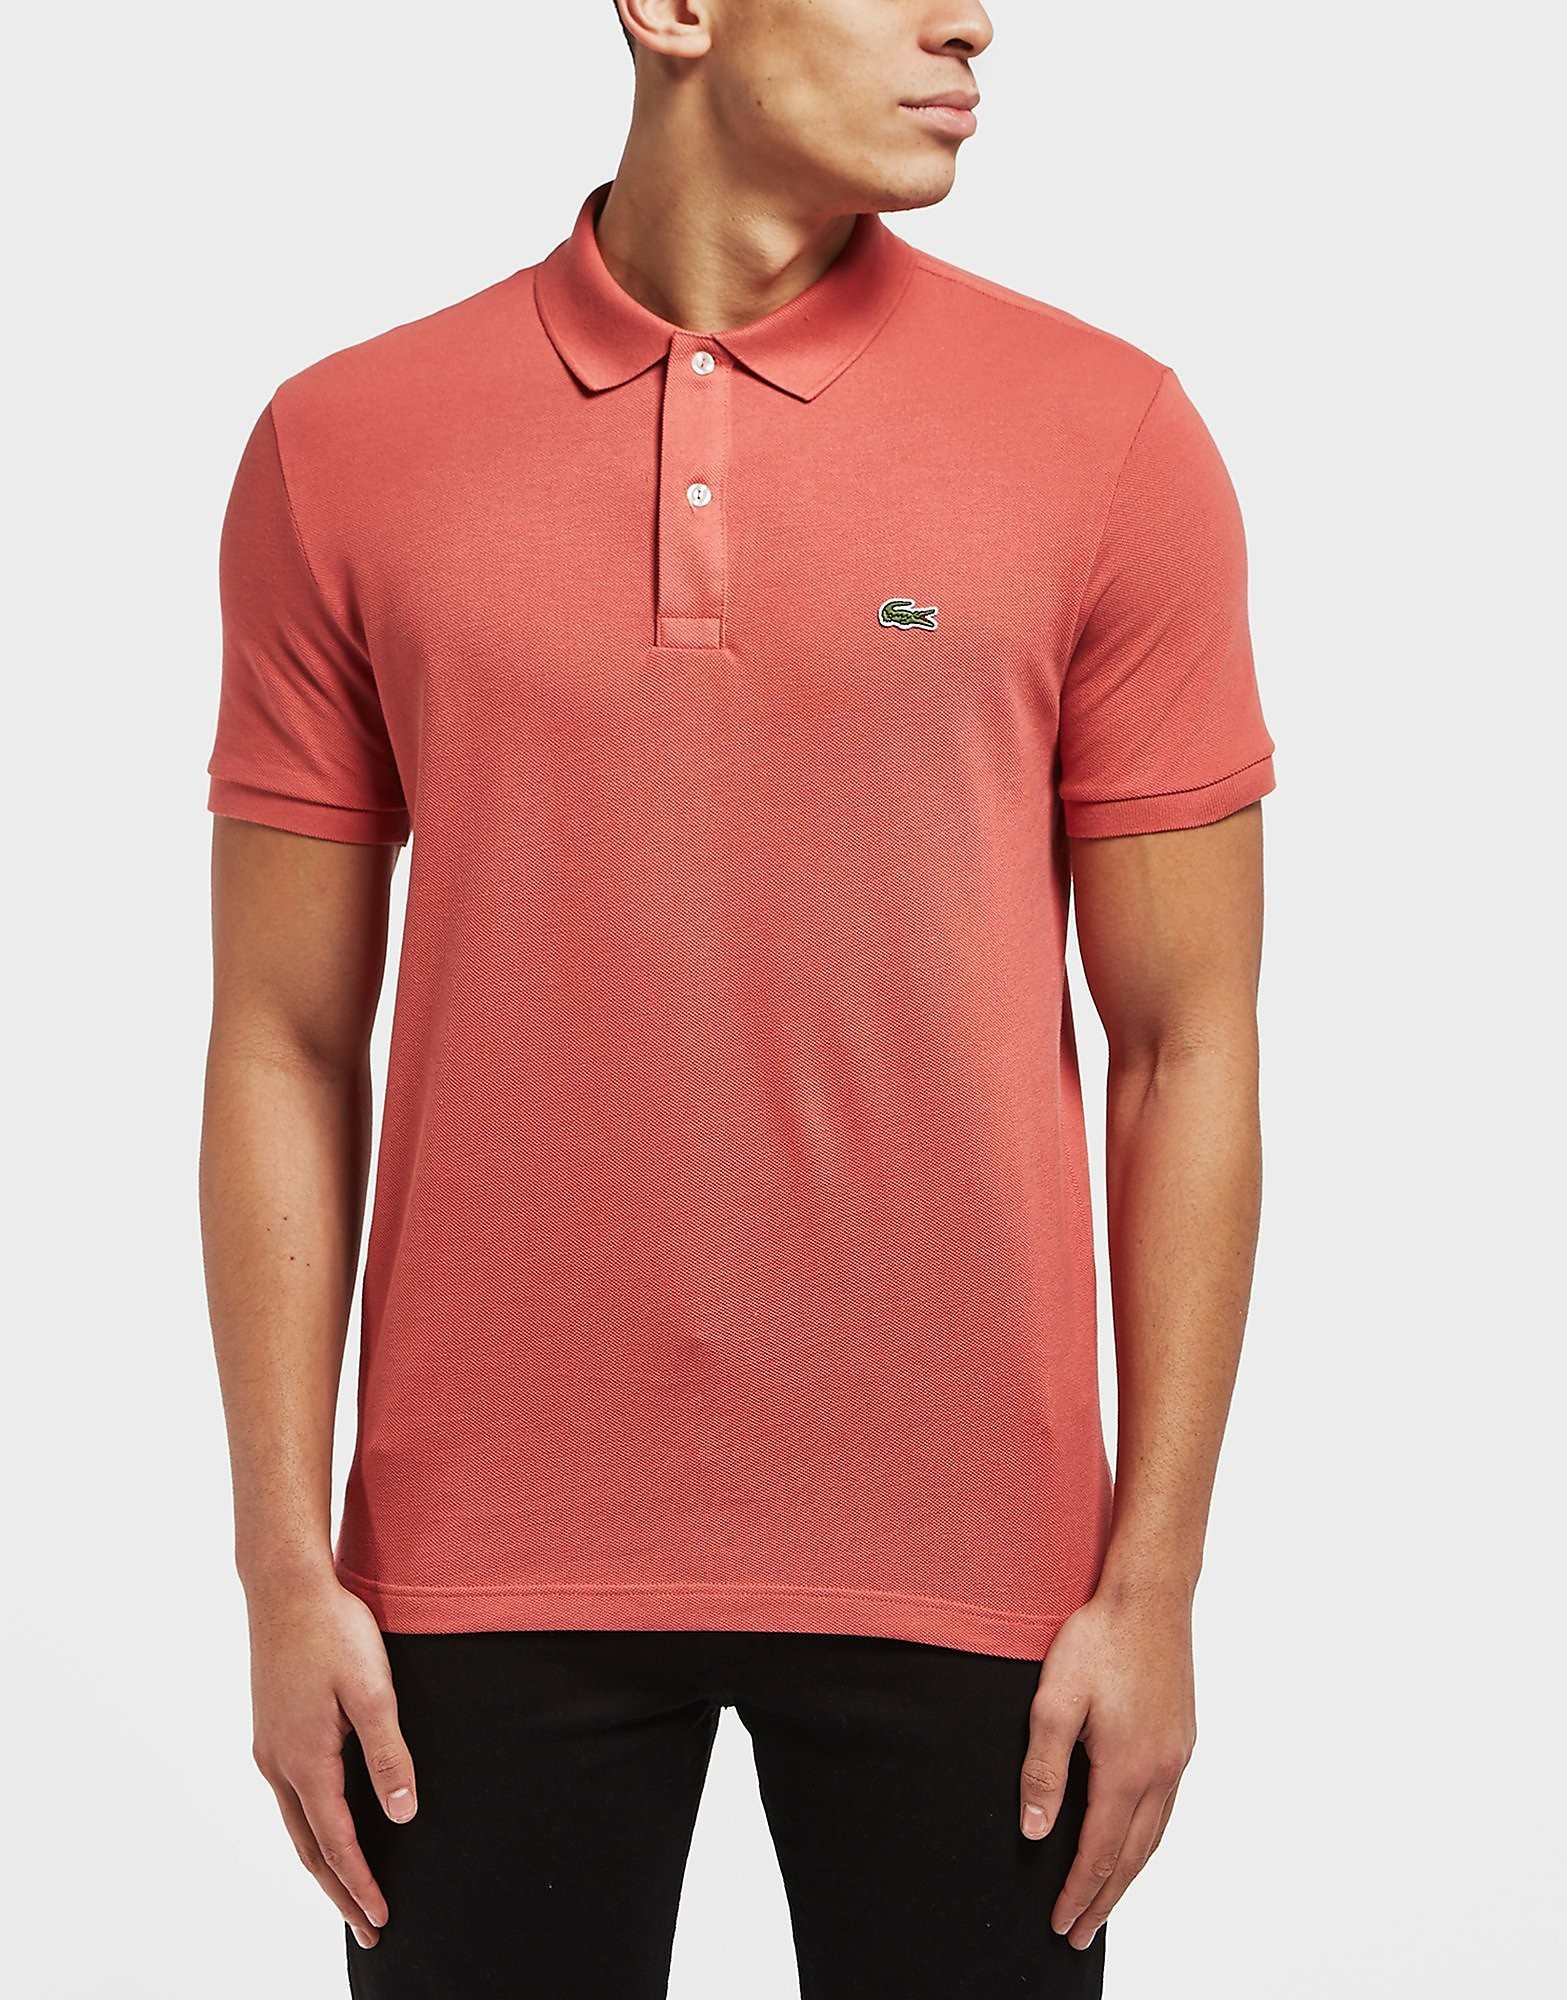 Lacoste Slim Short Sleeve Pique Polo Shirt